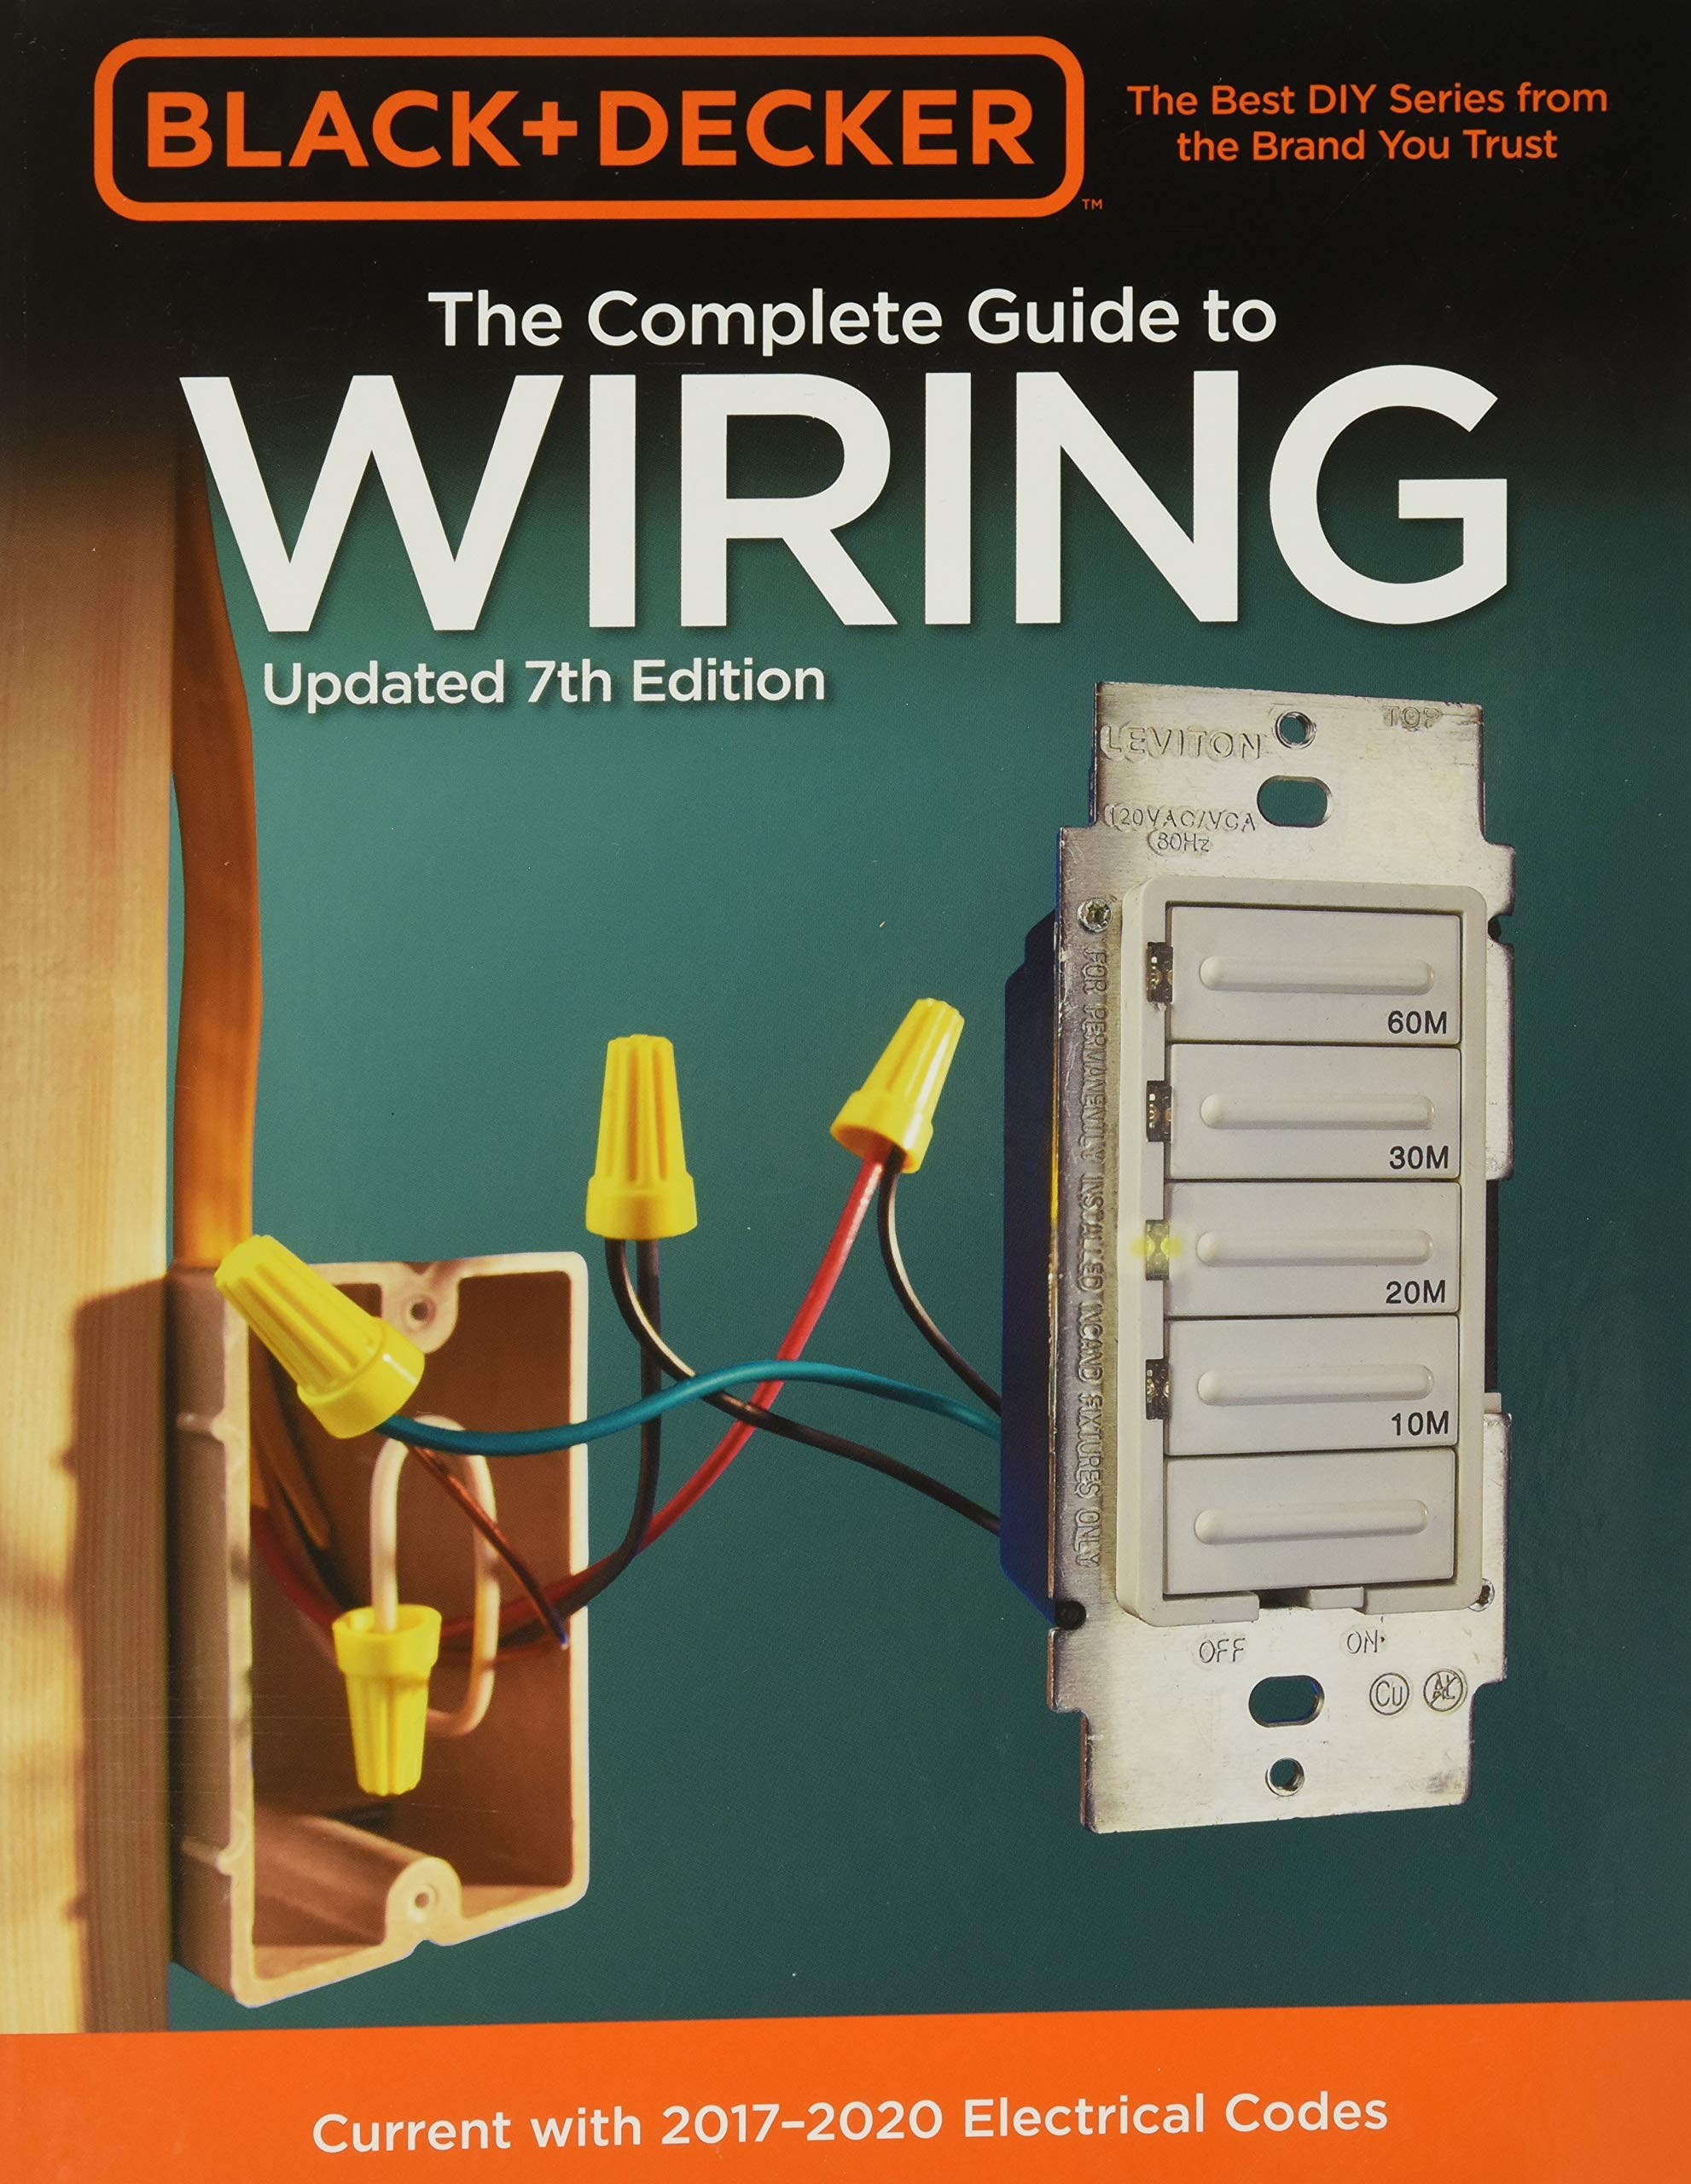 Black & Decker The Complete Guide to Wiring, Updated 7th Edition: Current  with 2017-2020 Electrical Codes (Black & Decker Complete Guide): Editors of  Cool Springs Press: 9780760353578: Amazon.com: Books | Basic Wiring Home Book |  | Amazon.com